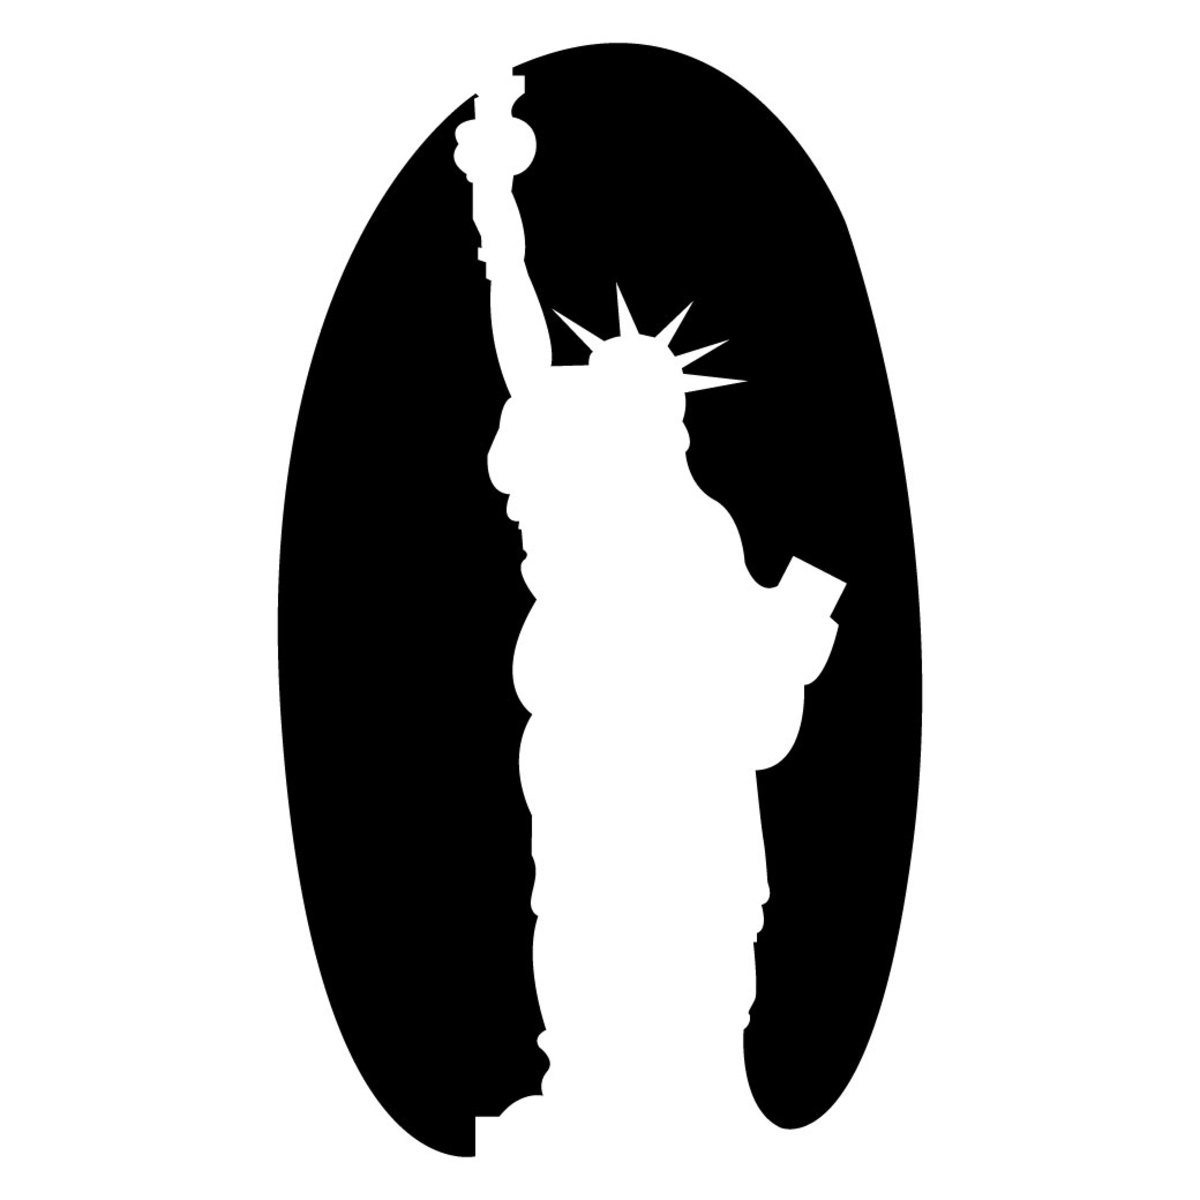 For a USA-themed jack-'o-lantern, use this Statue of Liberty pumpkin-carving template.